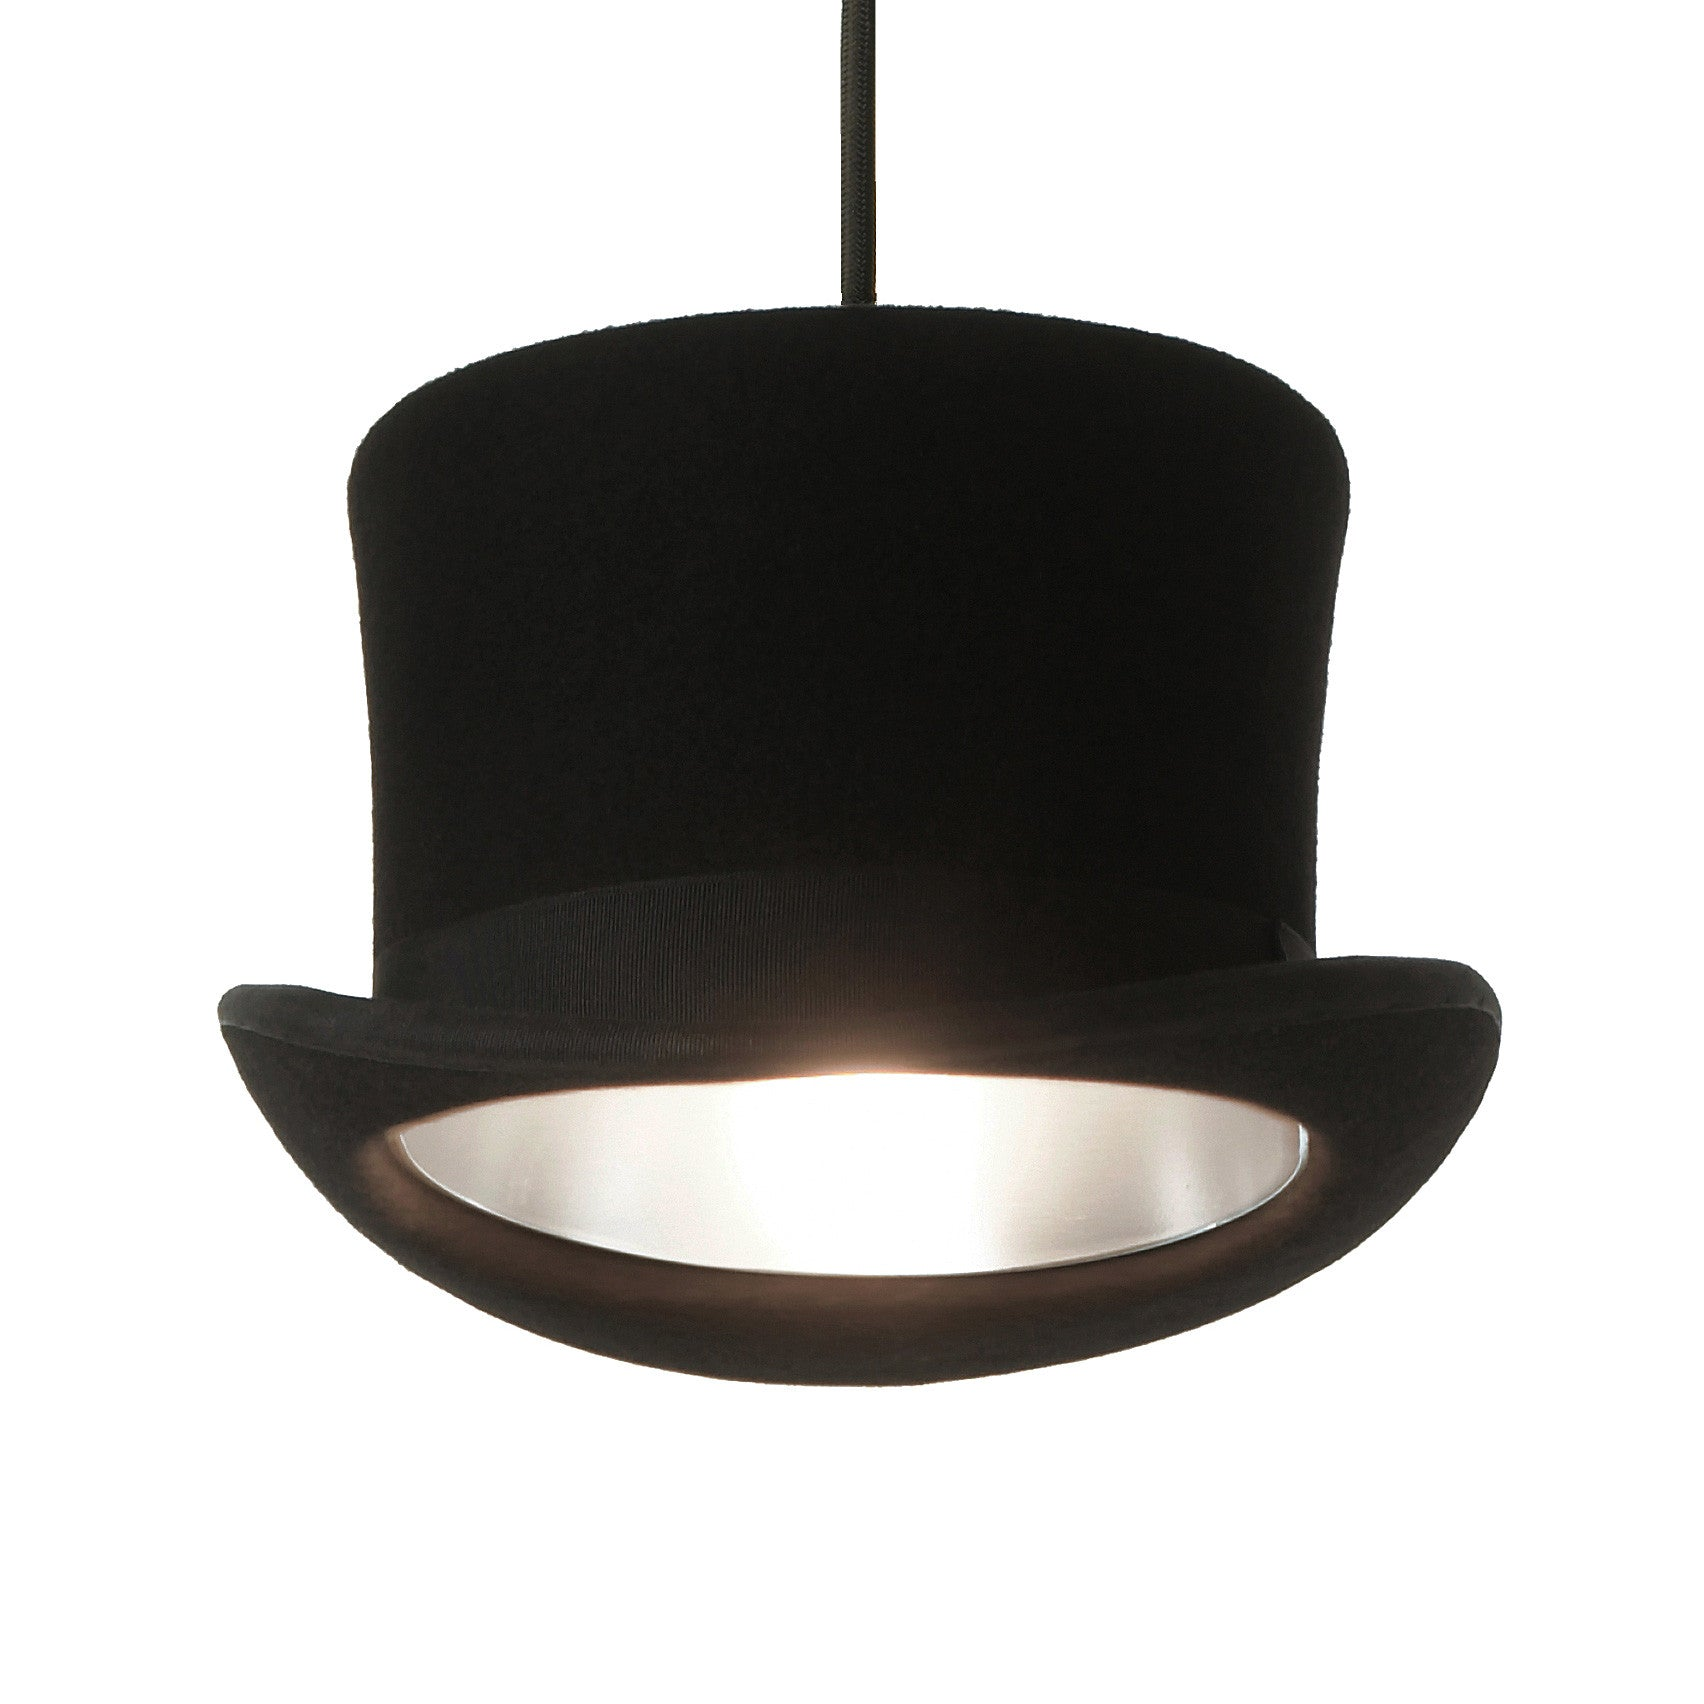 Wooster top hat lamp shade by jake phipps innermost funky lamp wooster top hat lamp shade mozeypictures Images